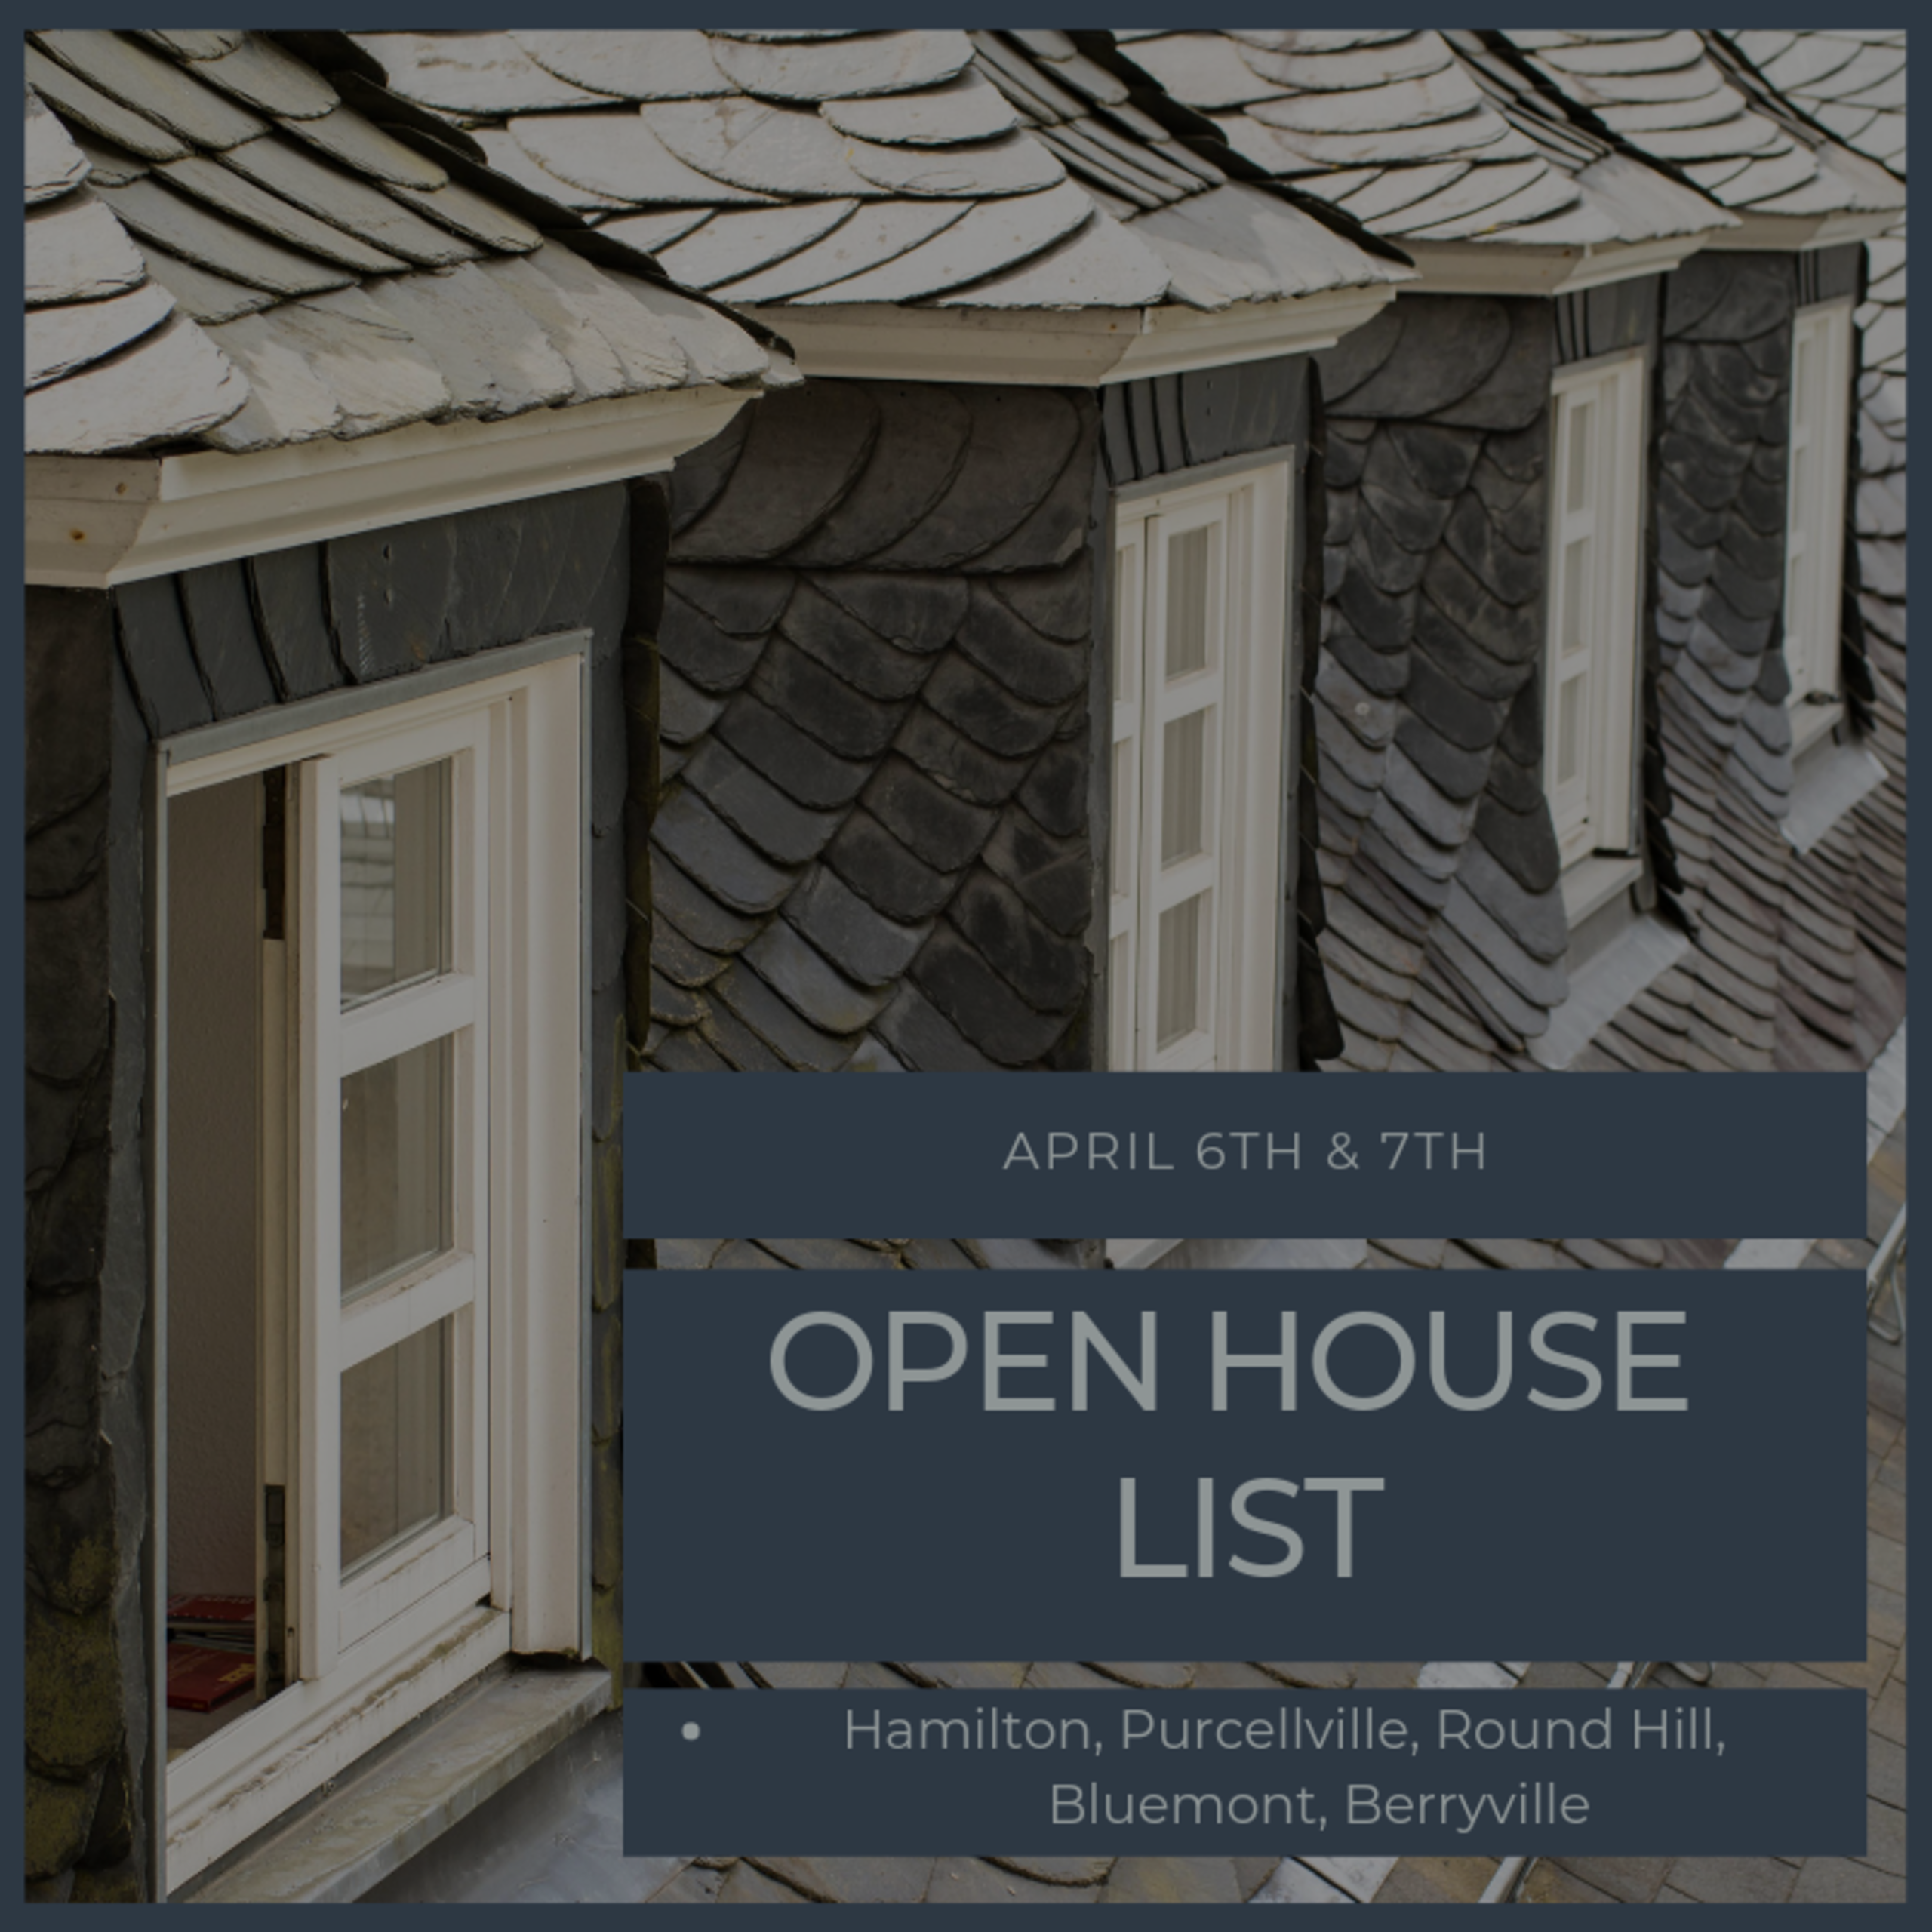 Open House List 4/6/19 – 4/7/19